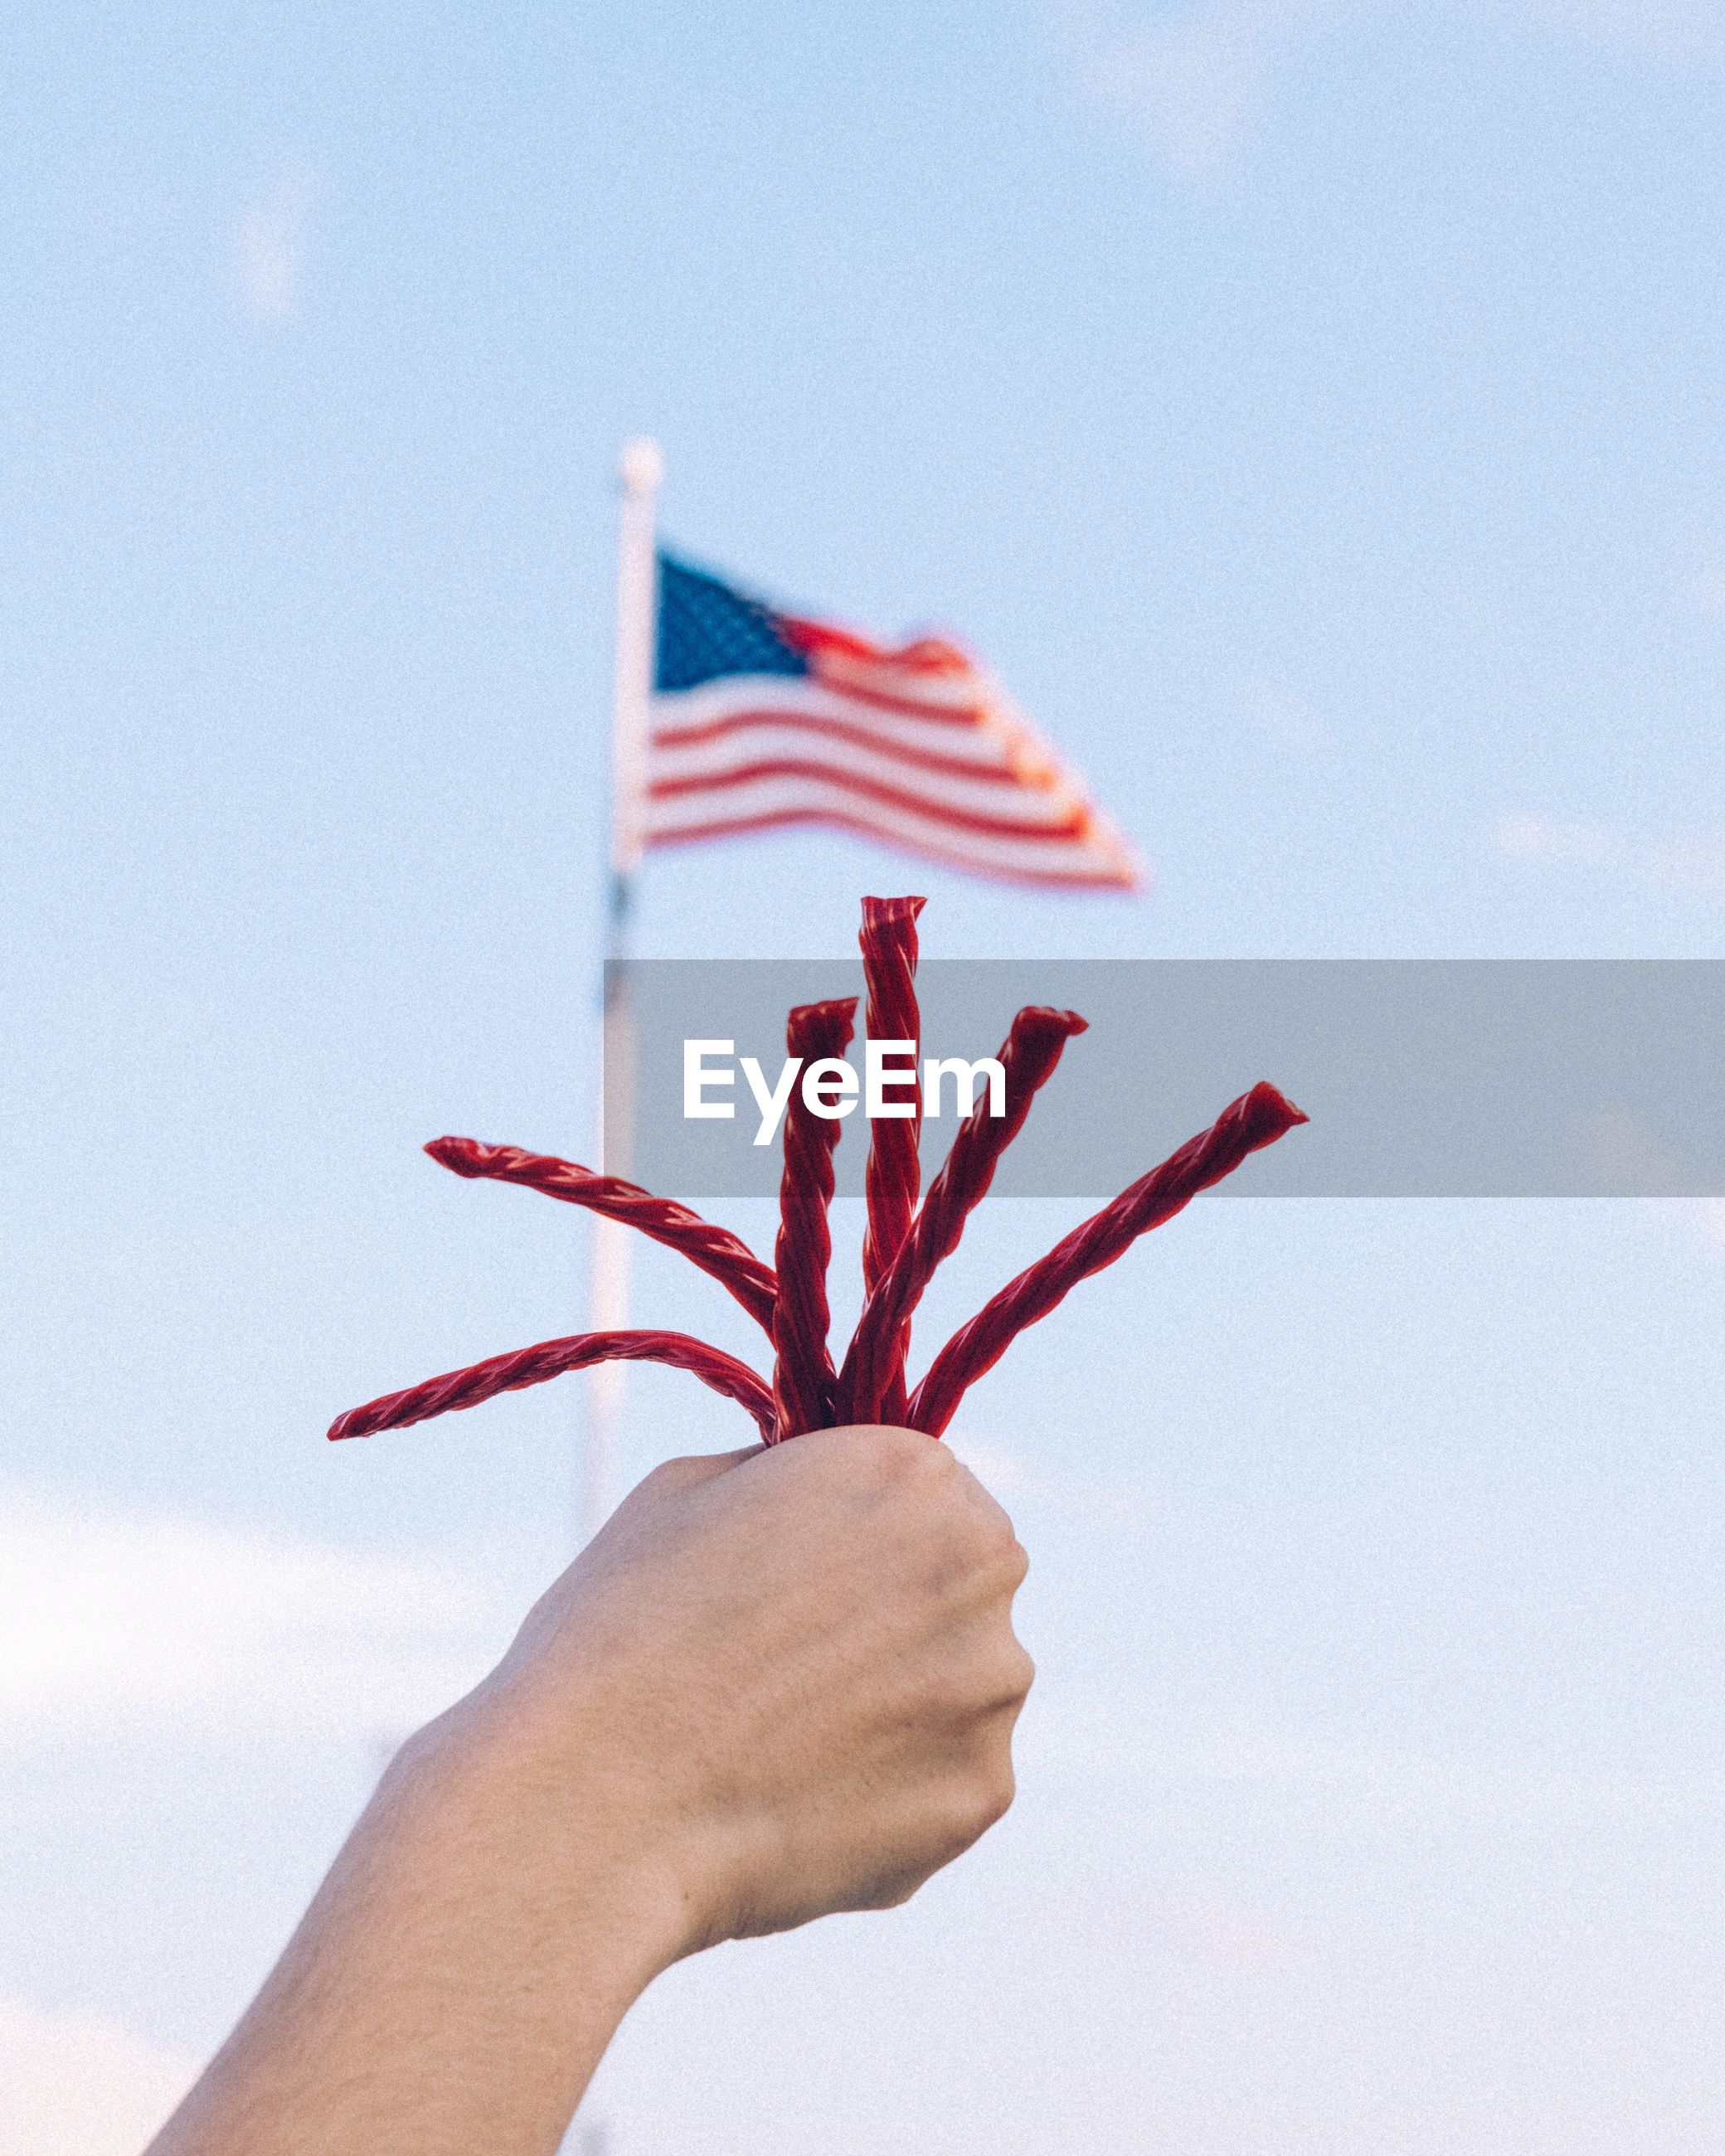 Cropped hand holding string against american flag